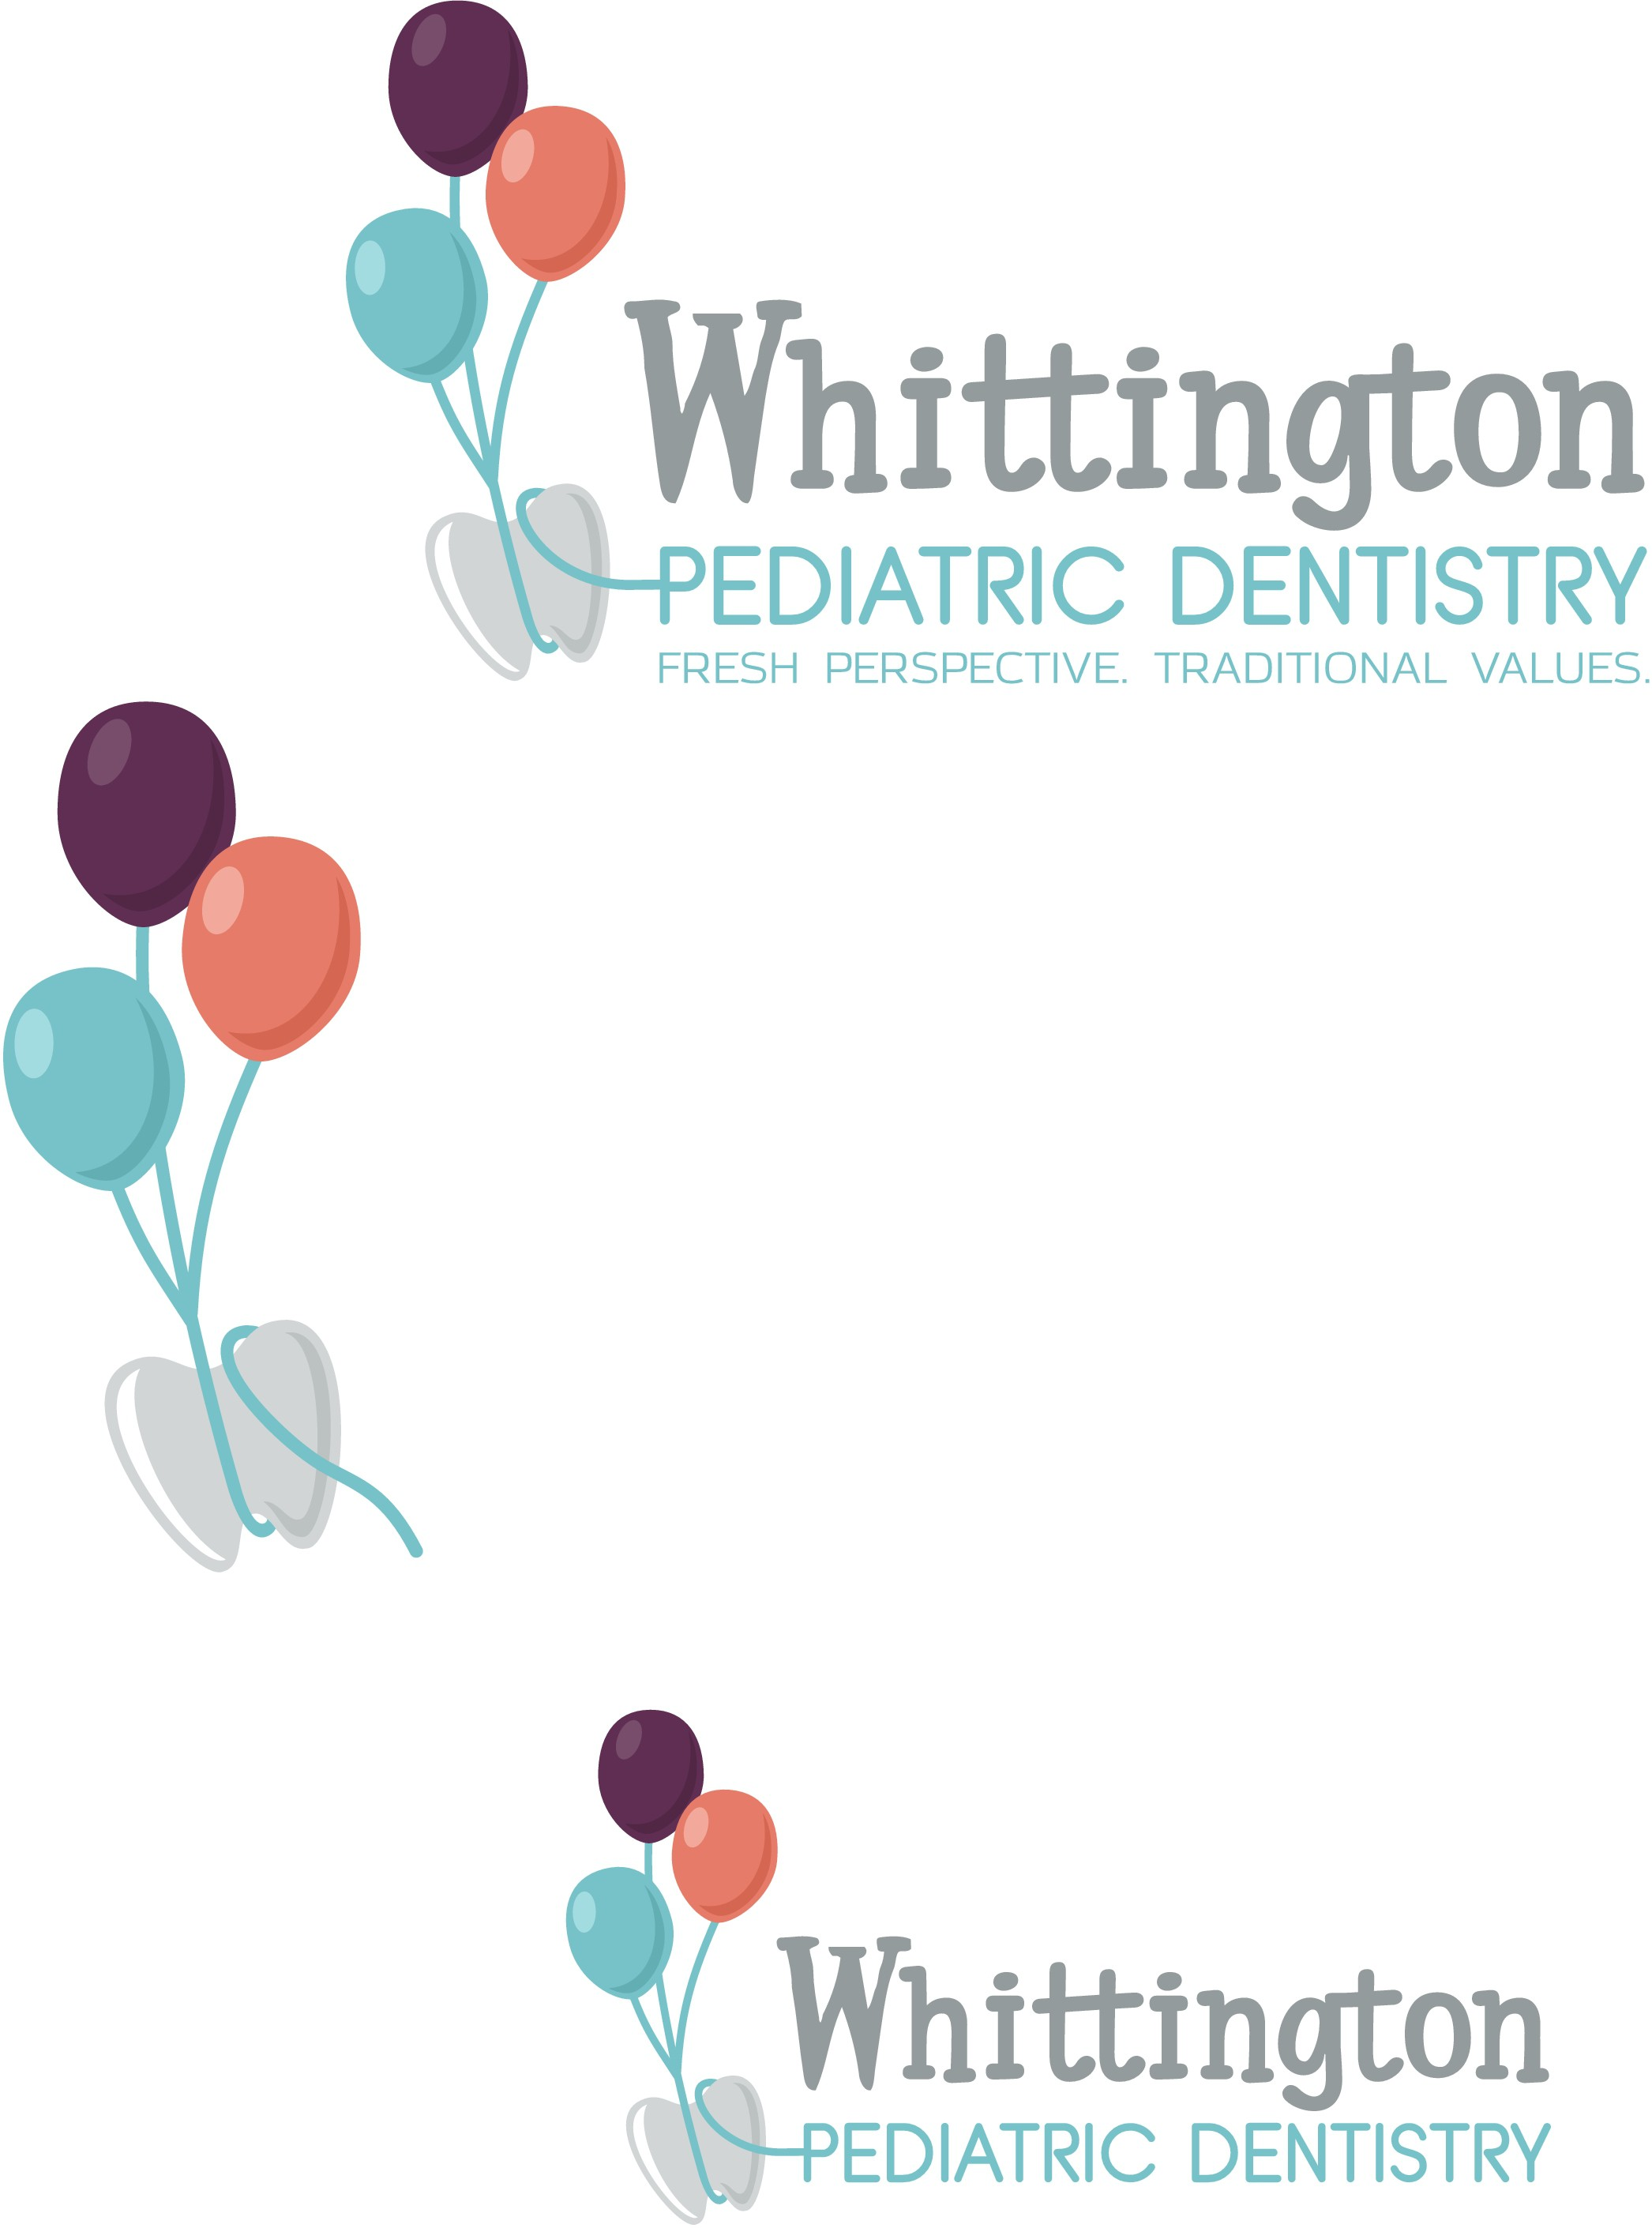 Pediatric Dentist needs balloon-themed logo!